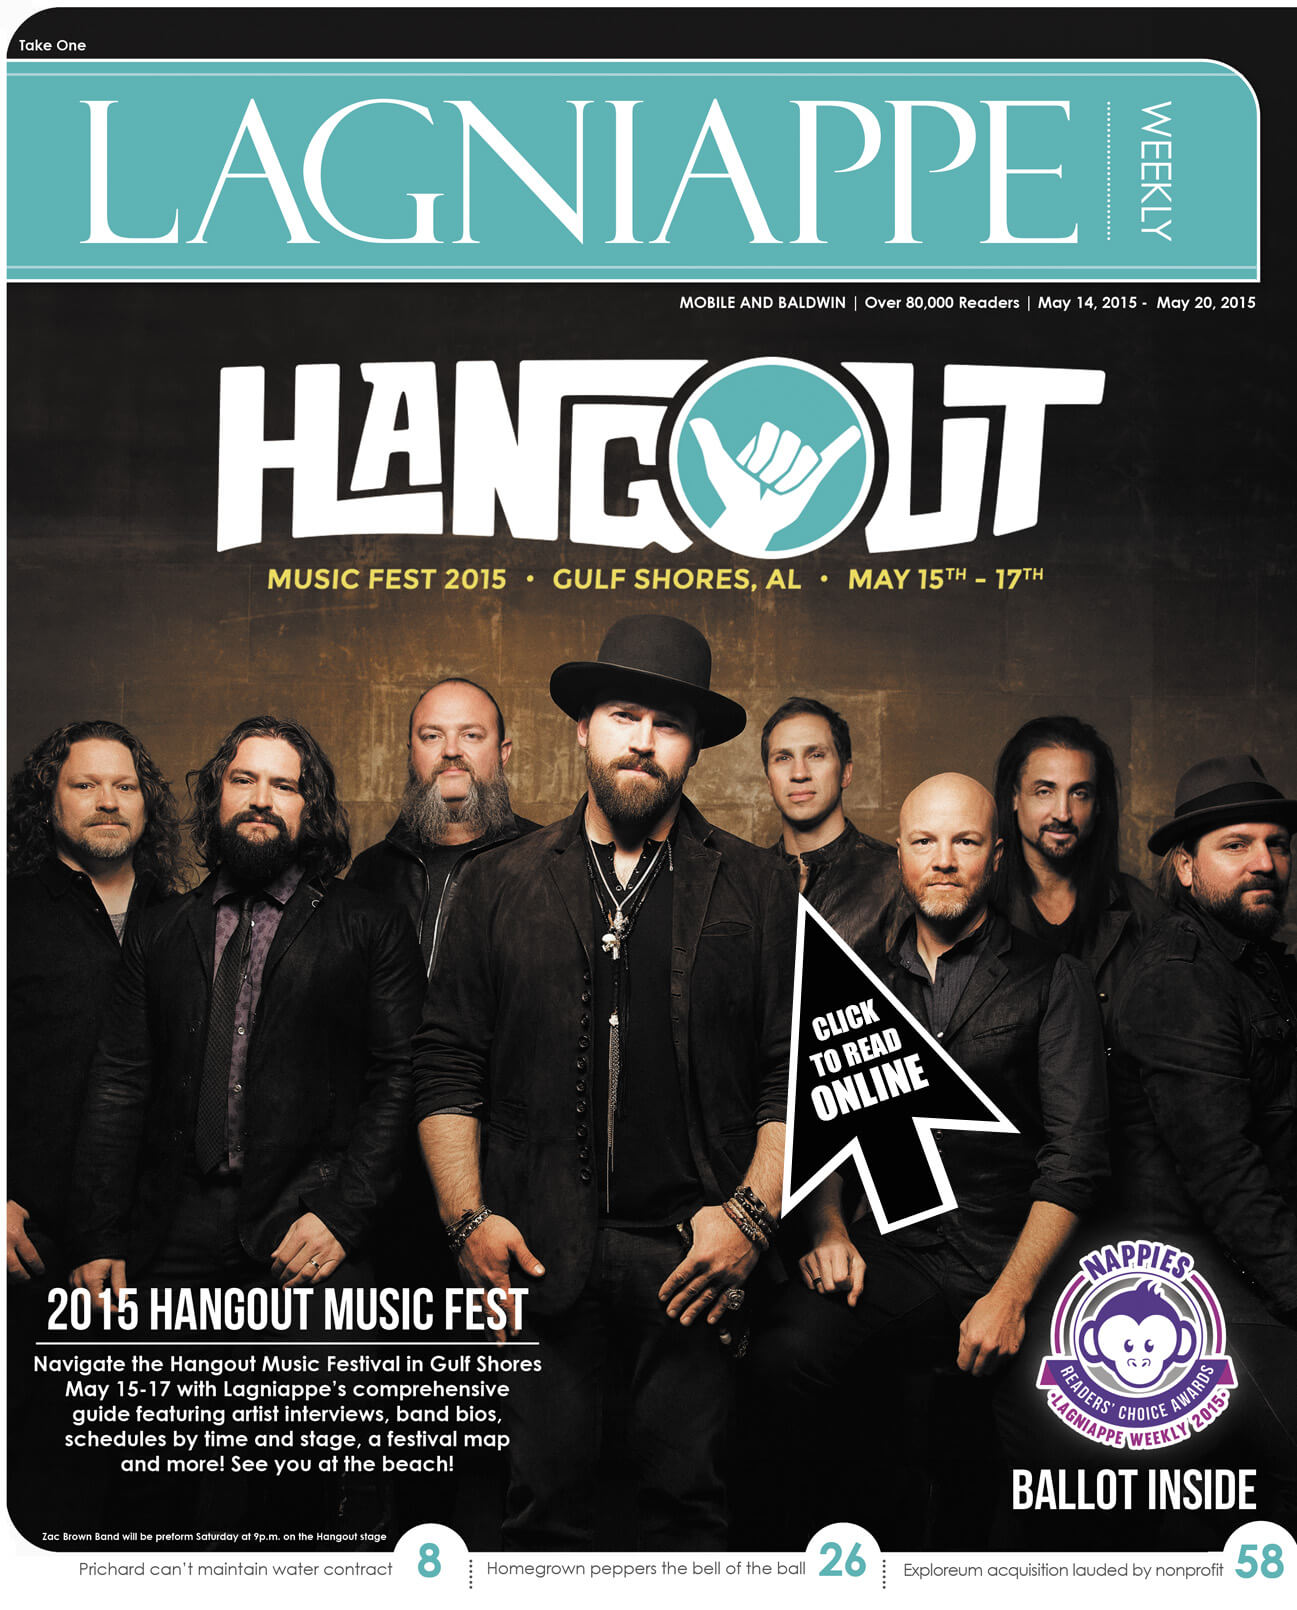 Lagniappe: May 14 – 20, 2015